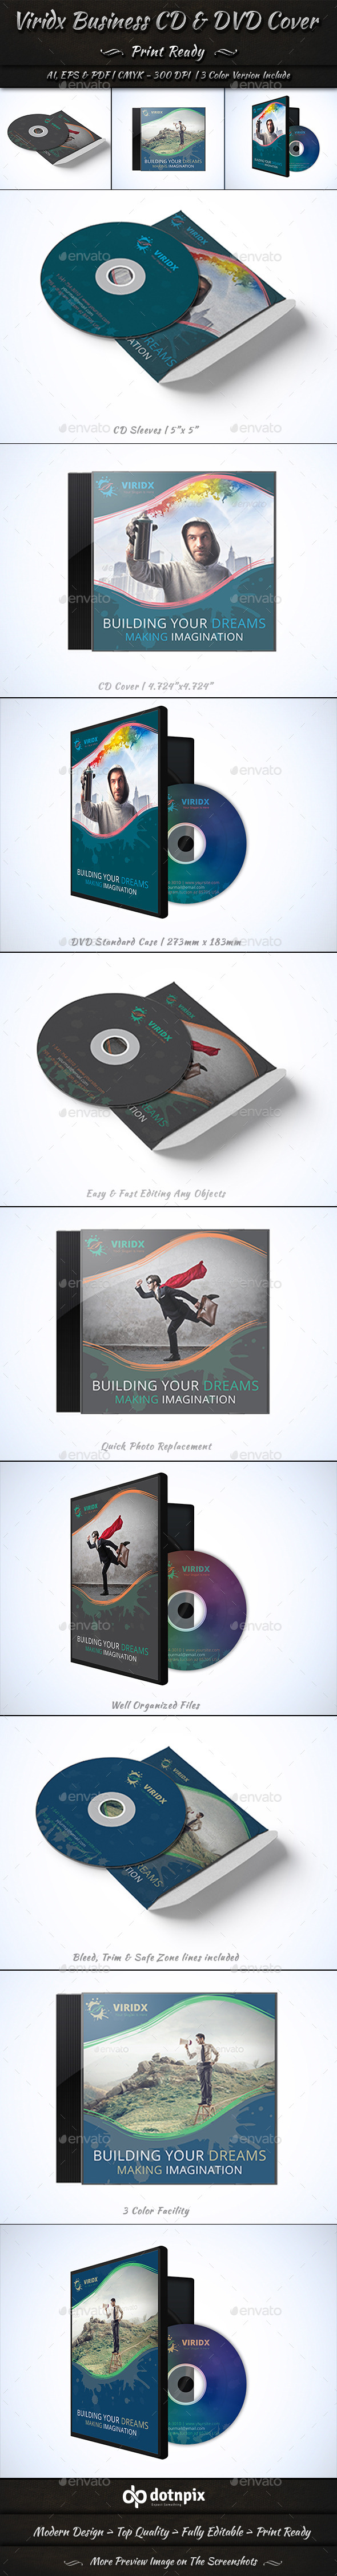 Viridx Business CD & DVD Cover - CD & DVD Artwork Print Templates